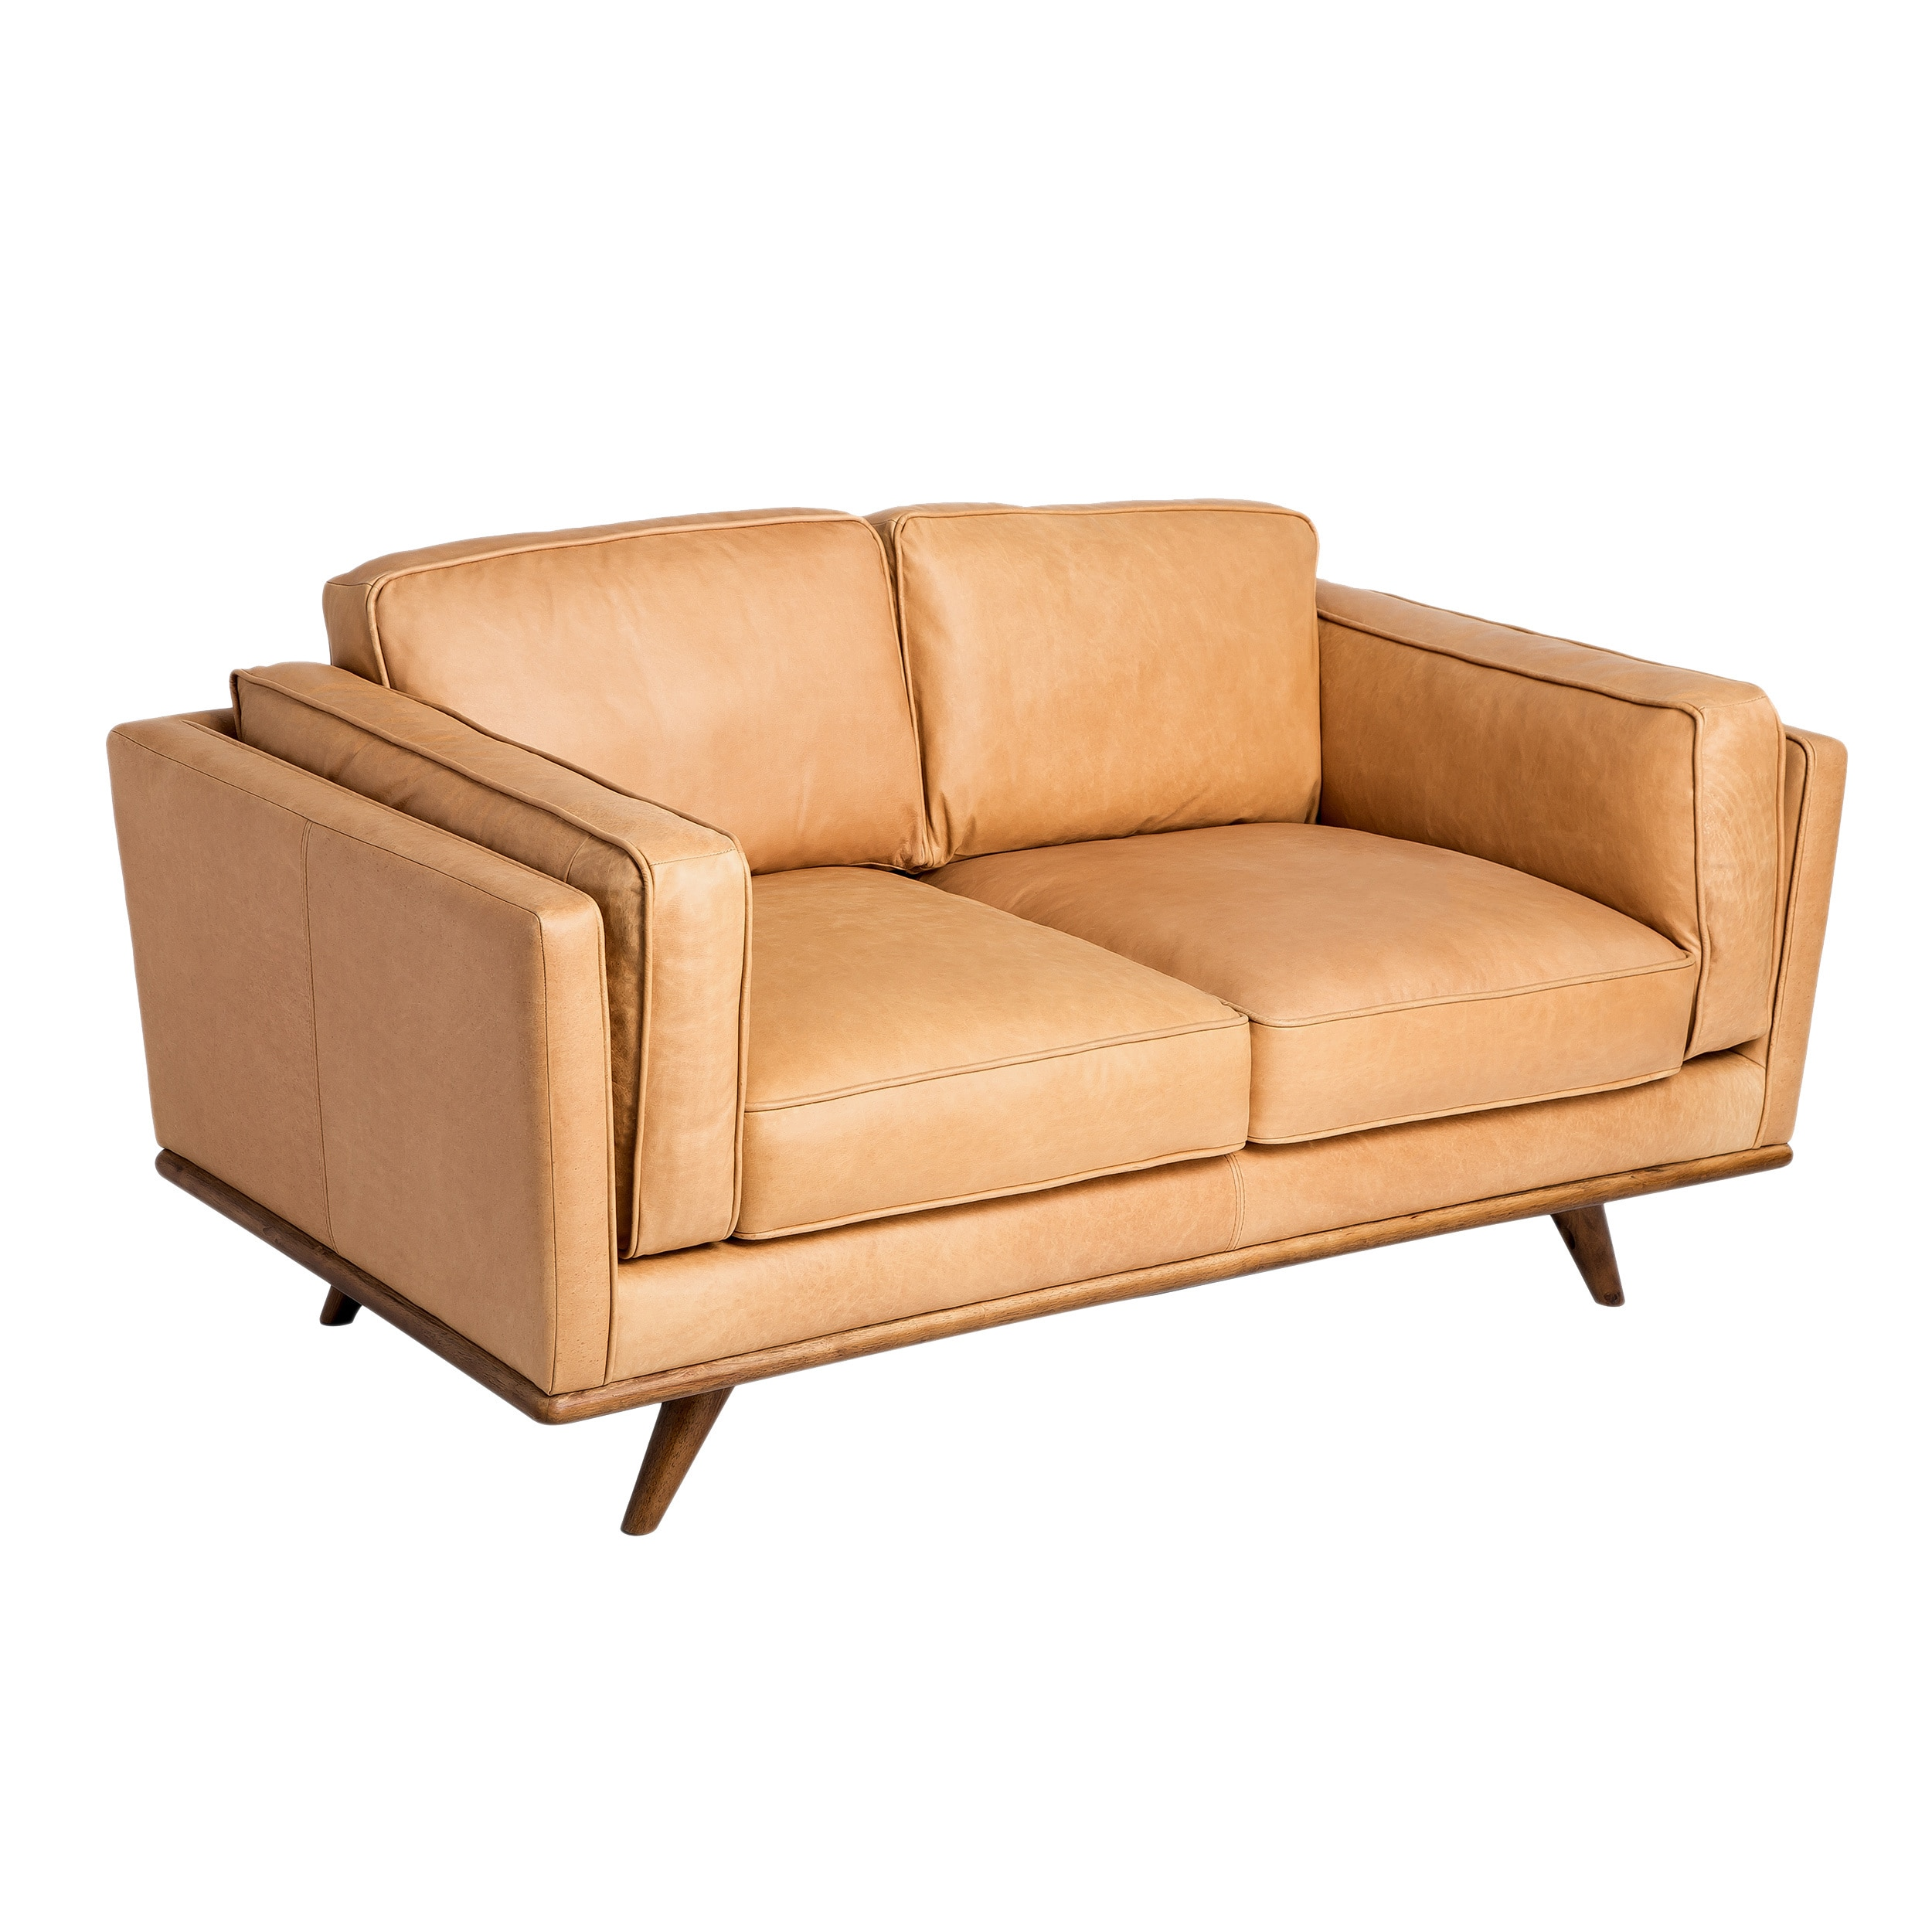 home lusso living tan orange papaya cindy classic red products loveseat rooms leather loveseats crawford